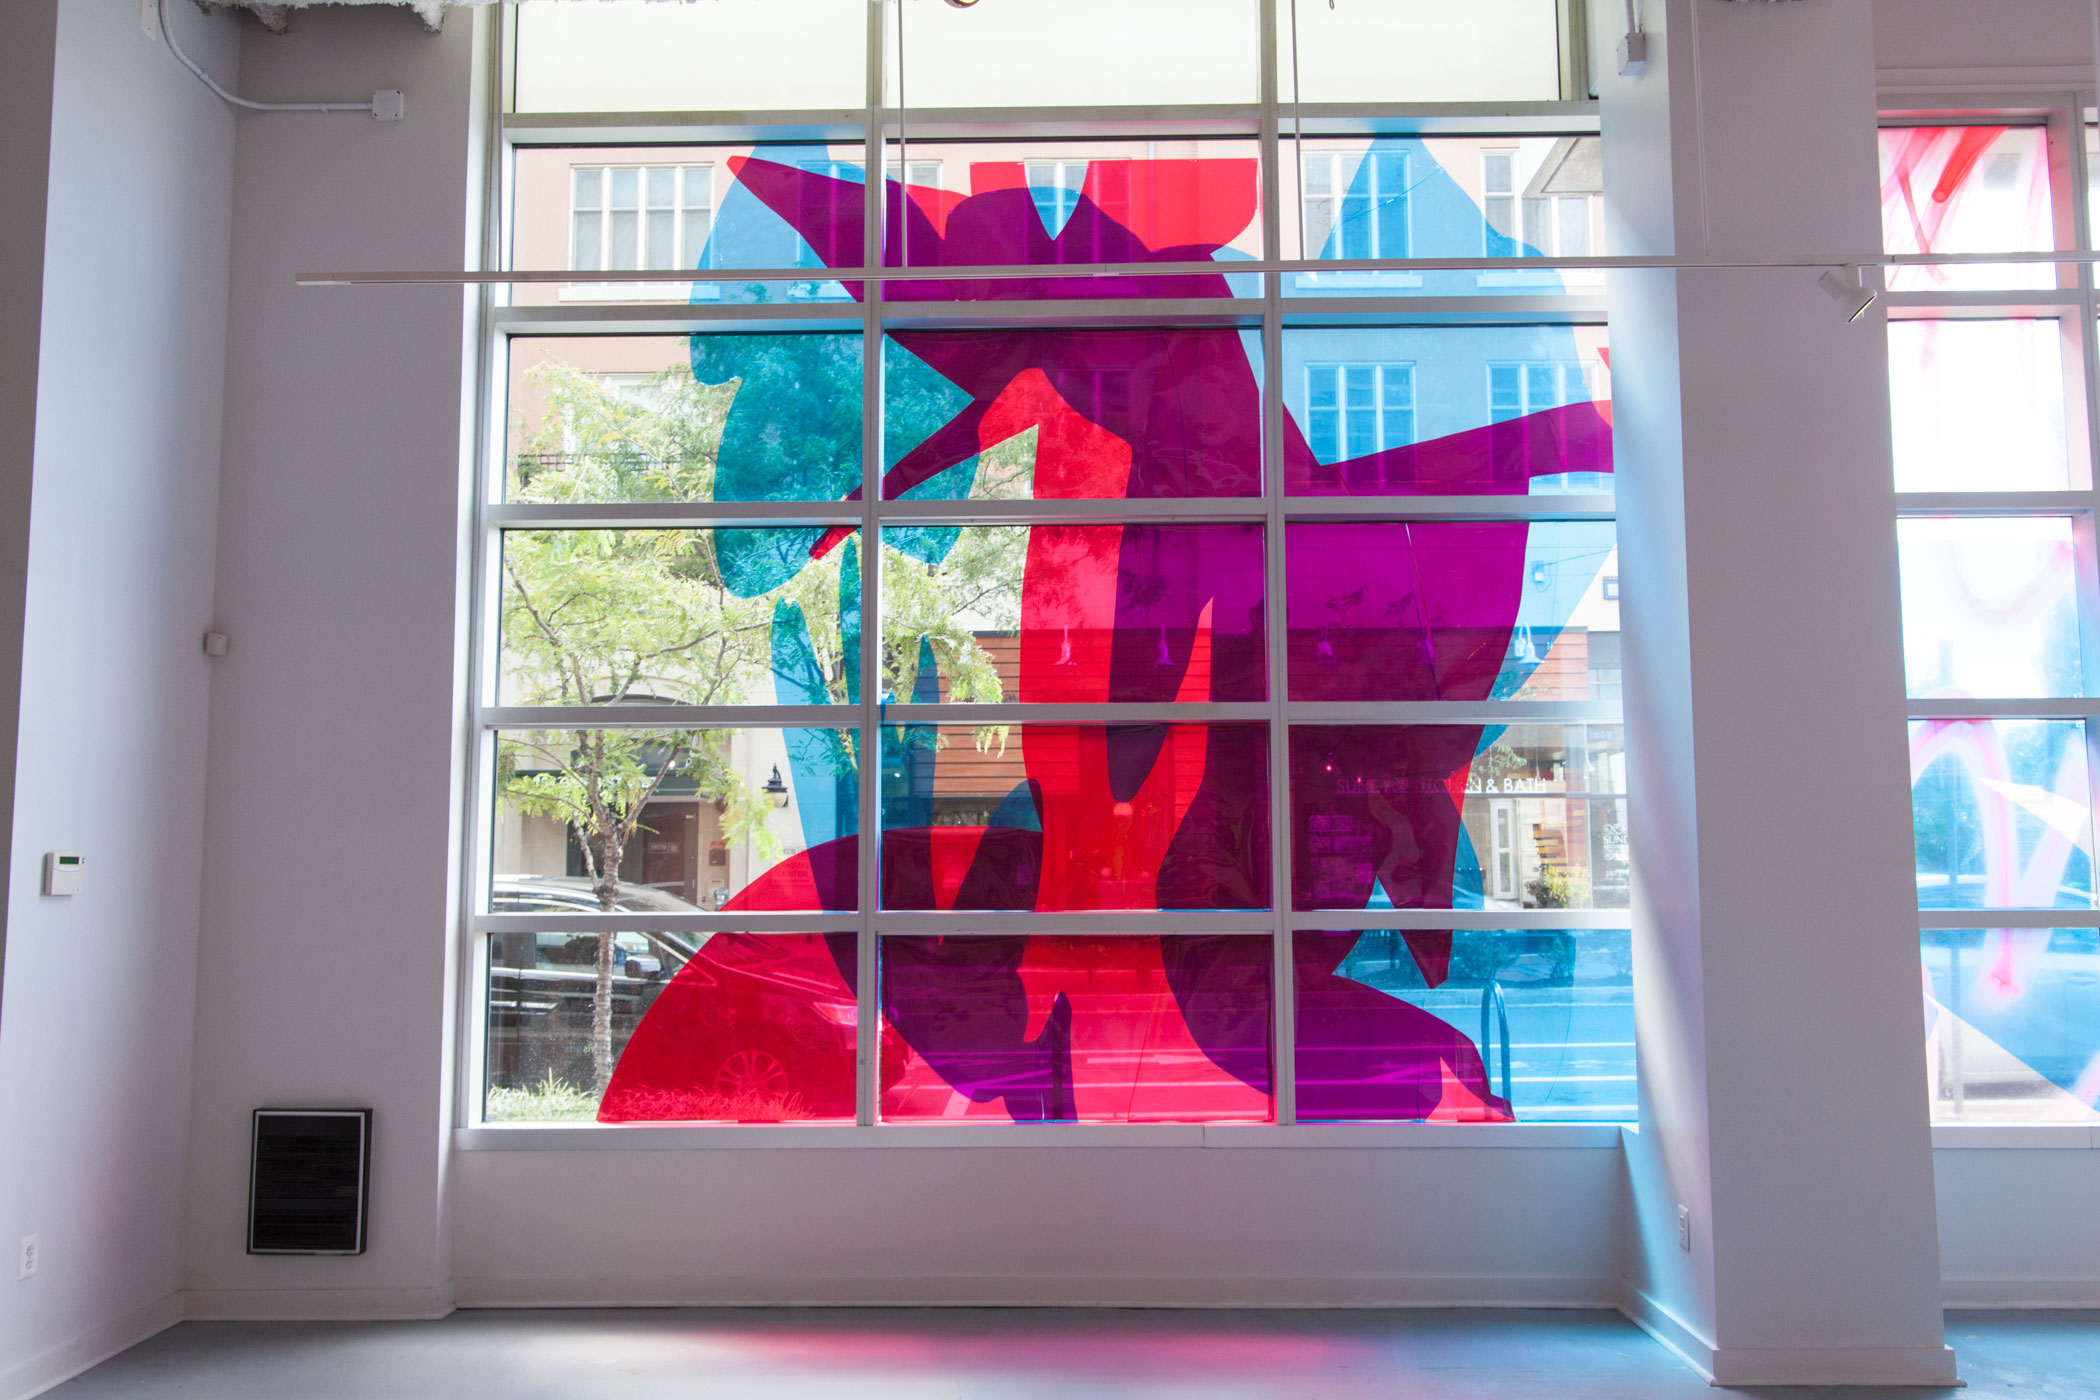 Untitled (window installation) , 15 x 45 ft., Dura-lar, spray paint, 2016